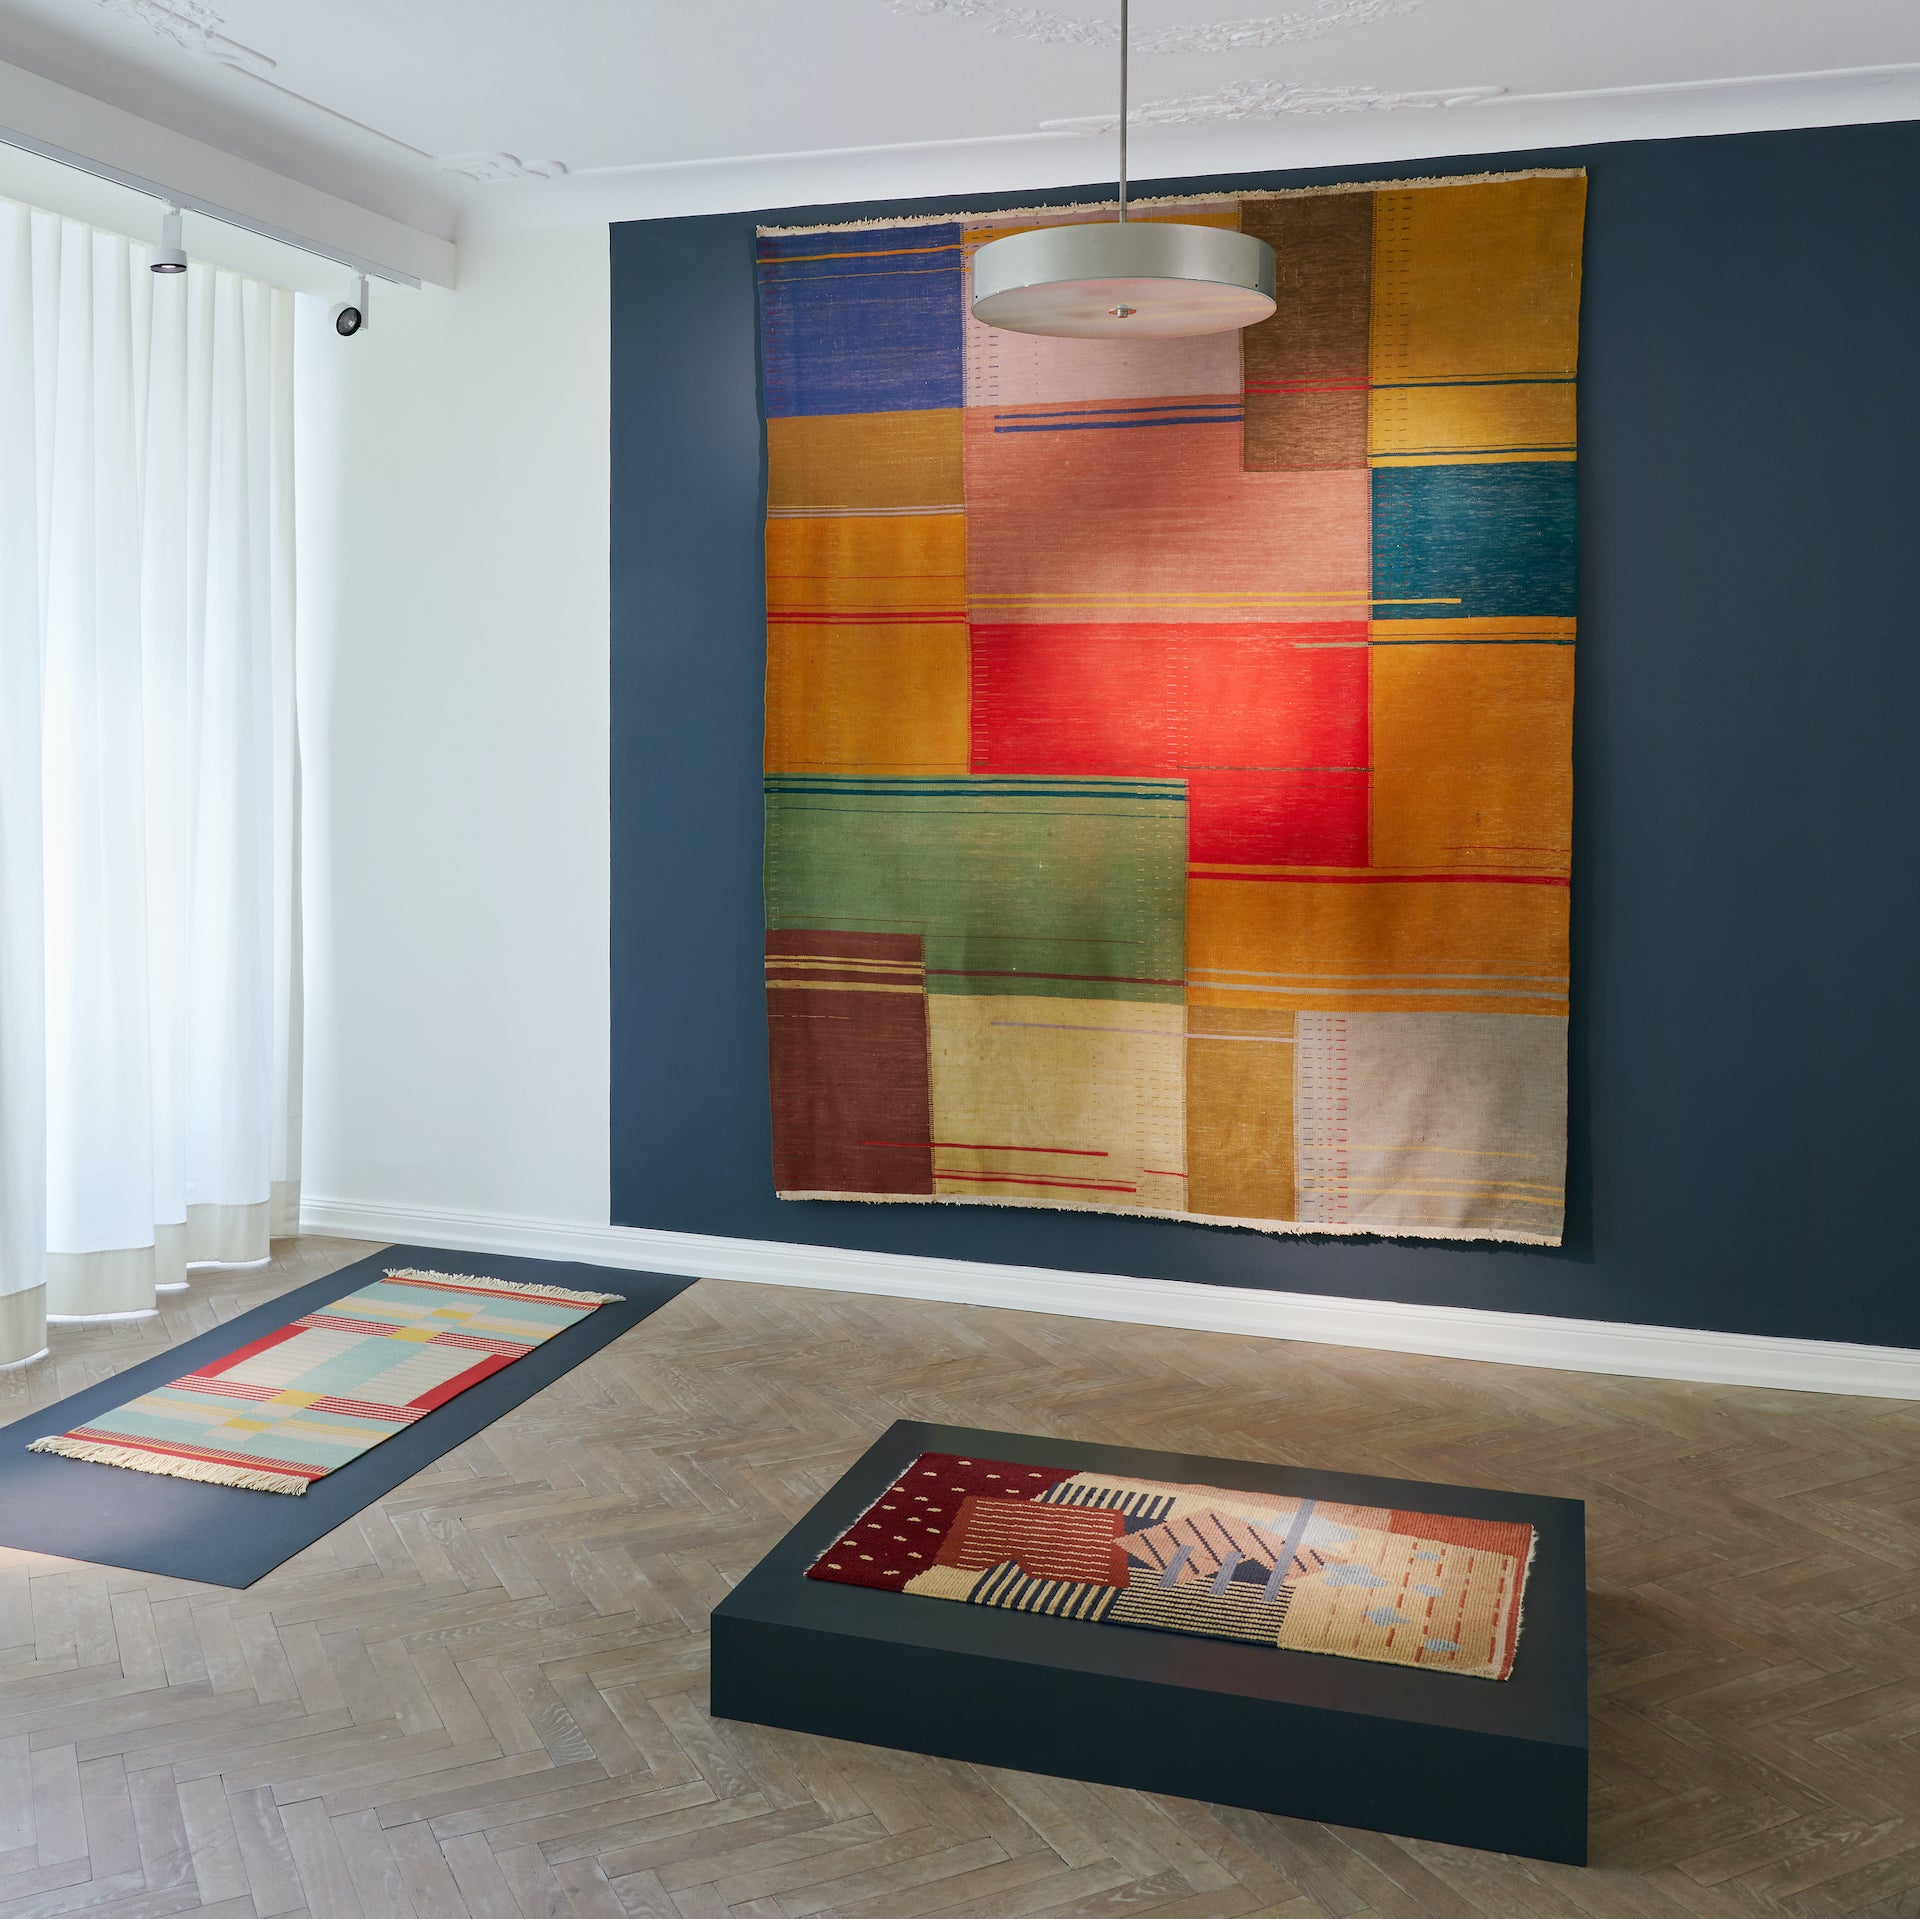 Textile Moderne exhibition at Galerie Ulrich Fiedler. Photo © Galerie Ulrich Fiedler